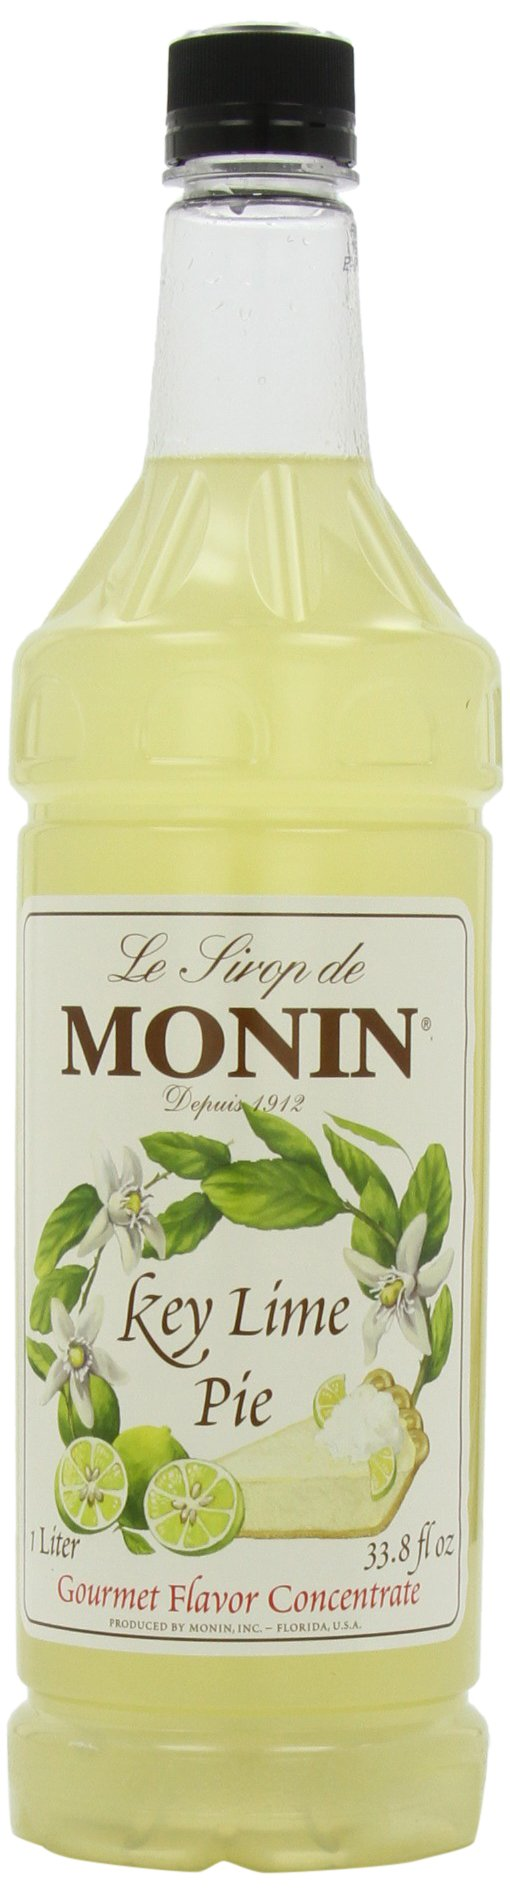 Monin Key Lime Pie, 48-Ounce Packages (Pack of 4) by Monin